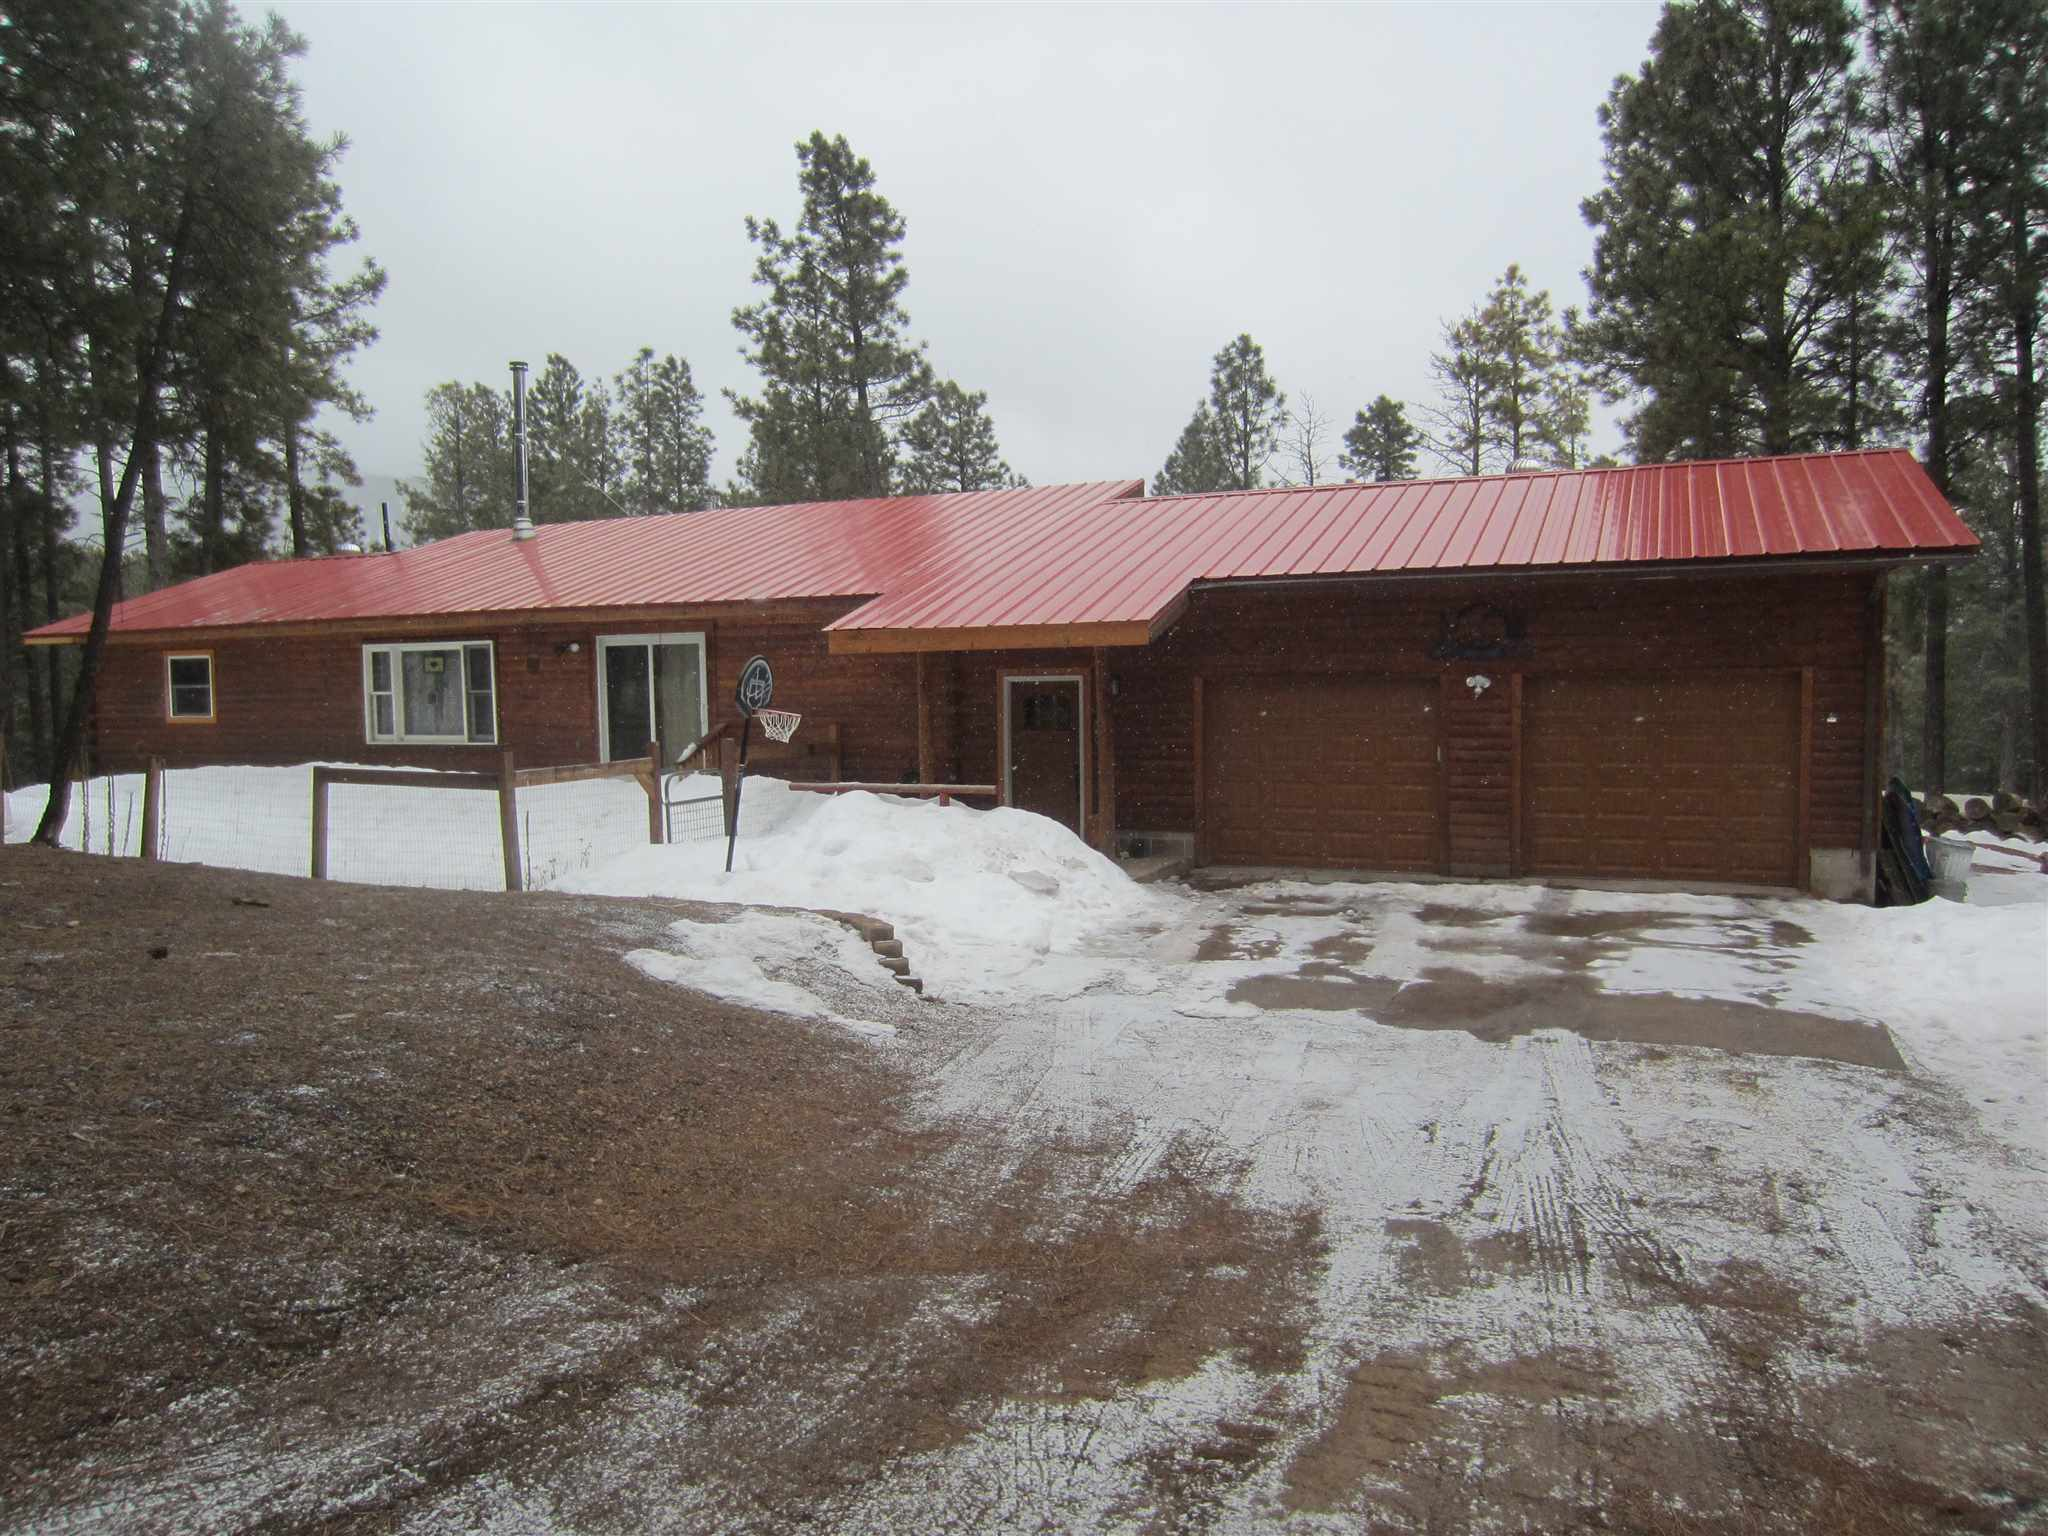 Jemez living never looked so good!  This well maintained home is right off of State Road 4, making it an easy commute into Los Alamos, or the Jemez Valley.  Over 1,600 square feet offers an open living area with higher ceilings, letting in tons of natural light.  Three bedrooms, two bathrooms (one recently updated) are just the beginning of what this property has to offer.  With a large front deck, mud room, and an oversized two car garage, this property is mountain living at its finest.  This house has potential to be a horse property (coral and out-buildings), or, outdoor space could be modified to meet whatever your needs may be.  You won't want to miss it!